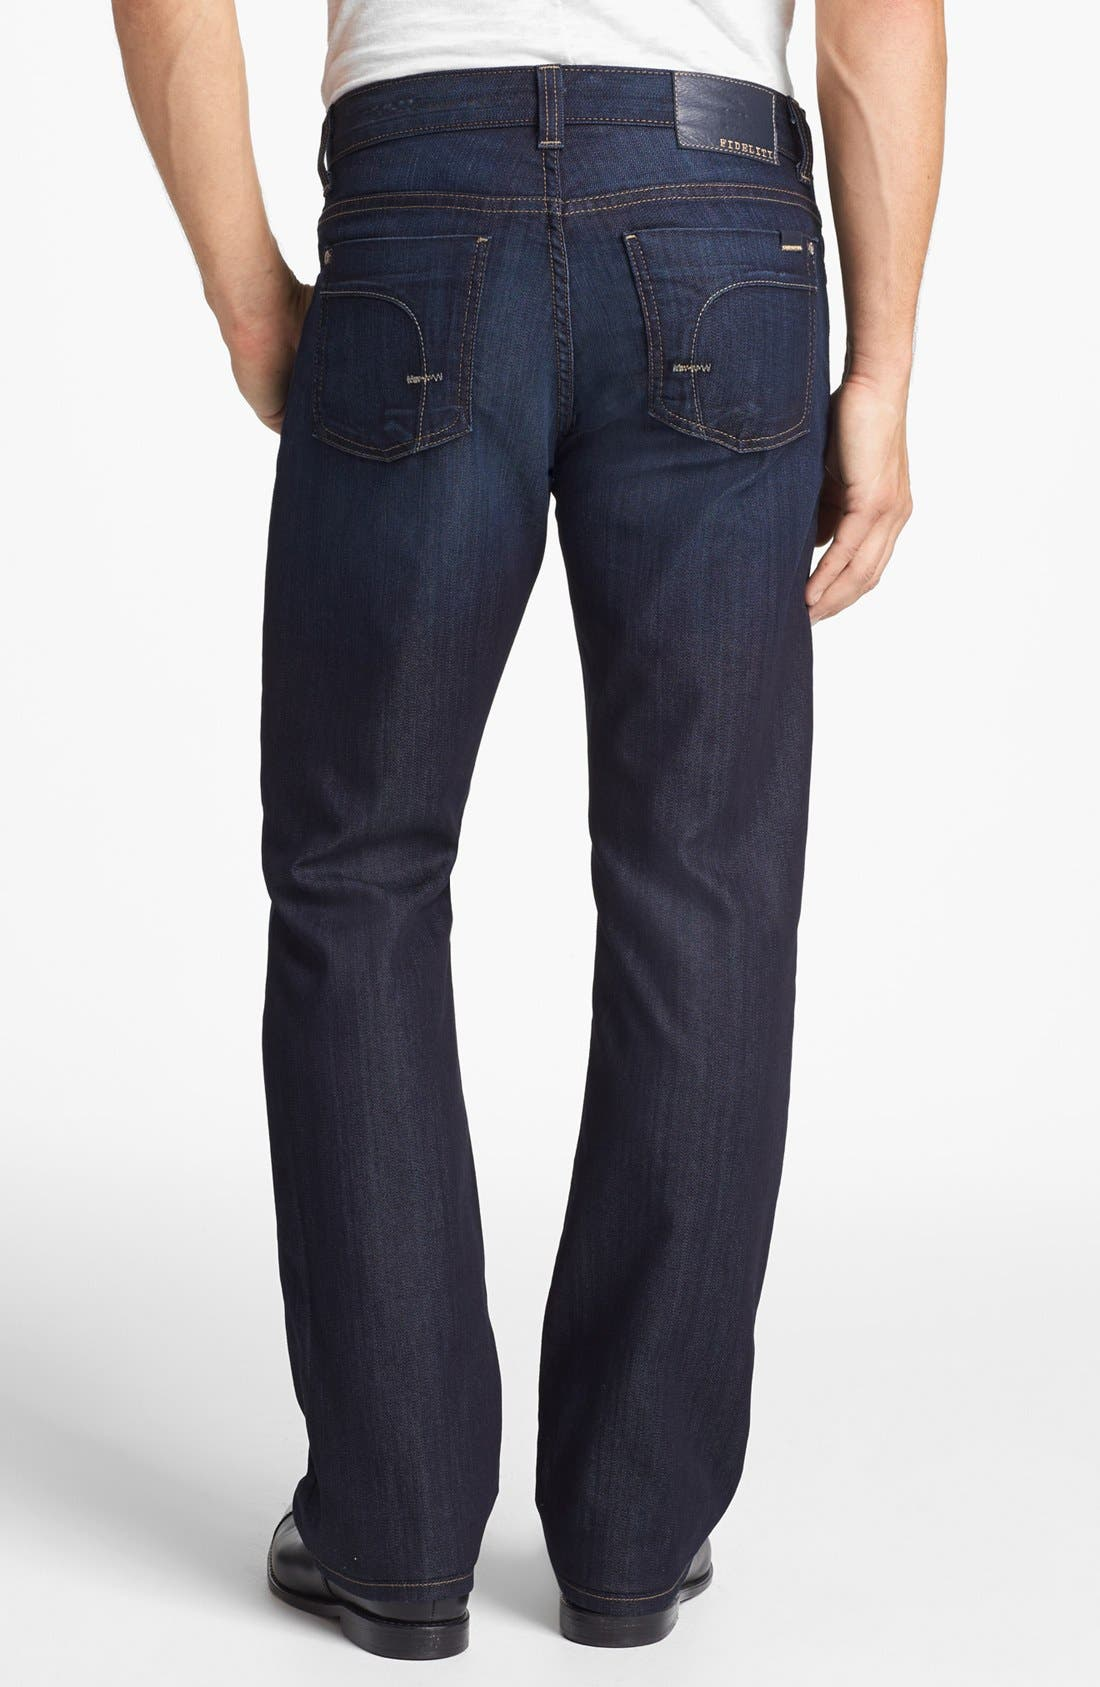 50-11 Relaxed Fit Jeans,                             Alternate thumbnail 2, color,                             Calvary